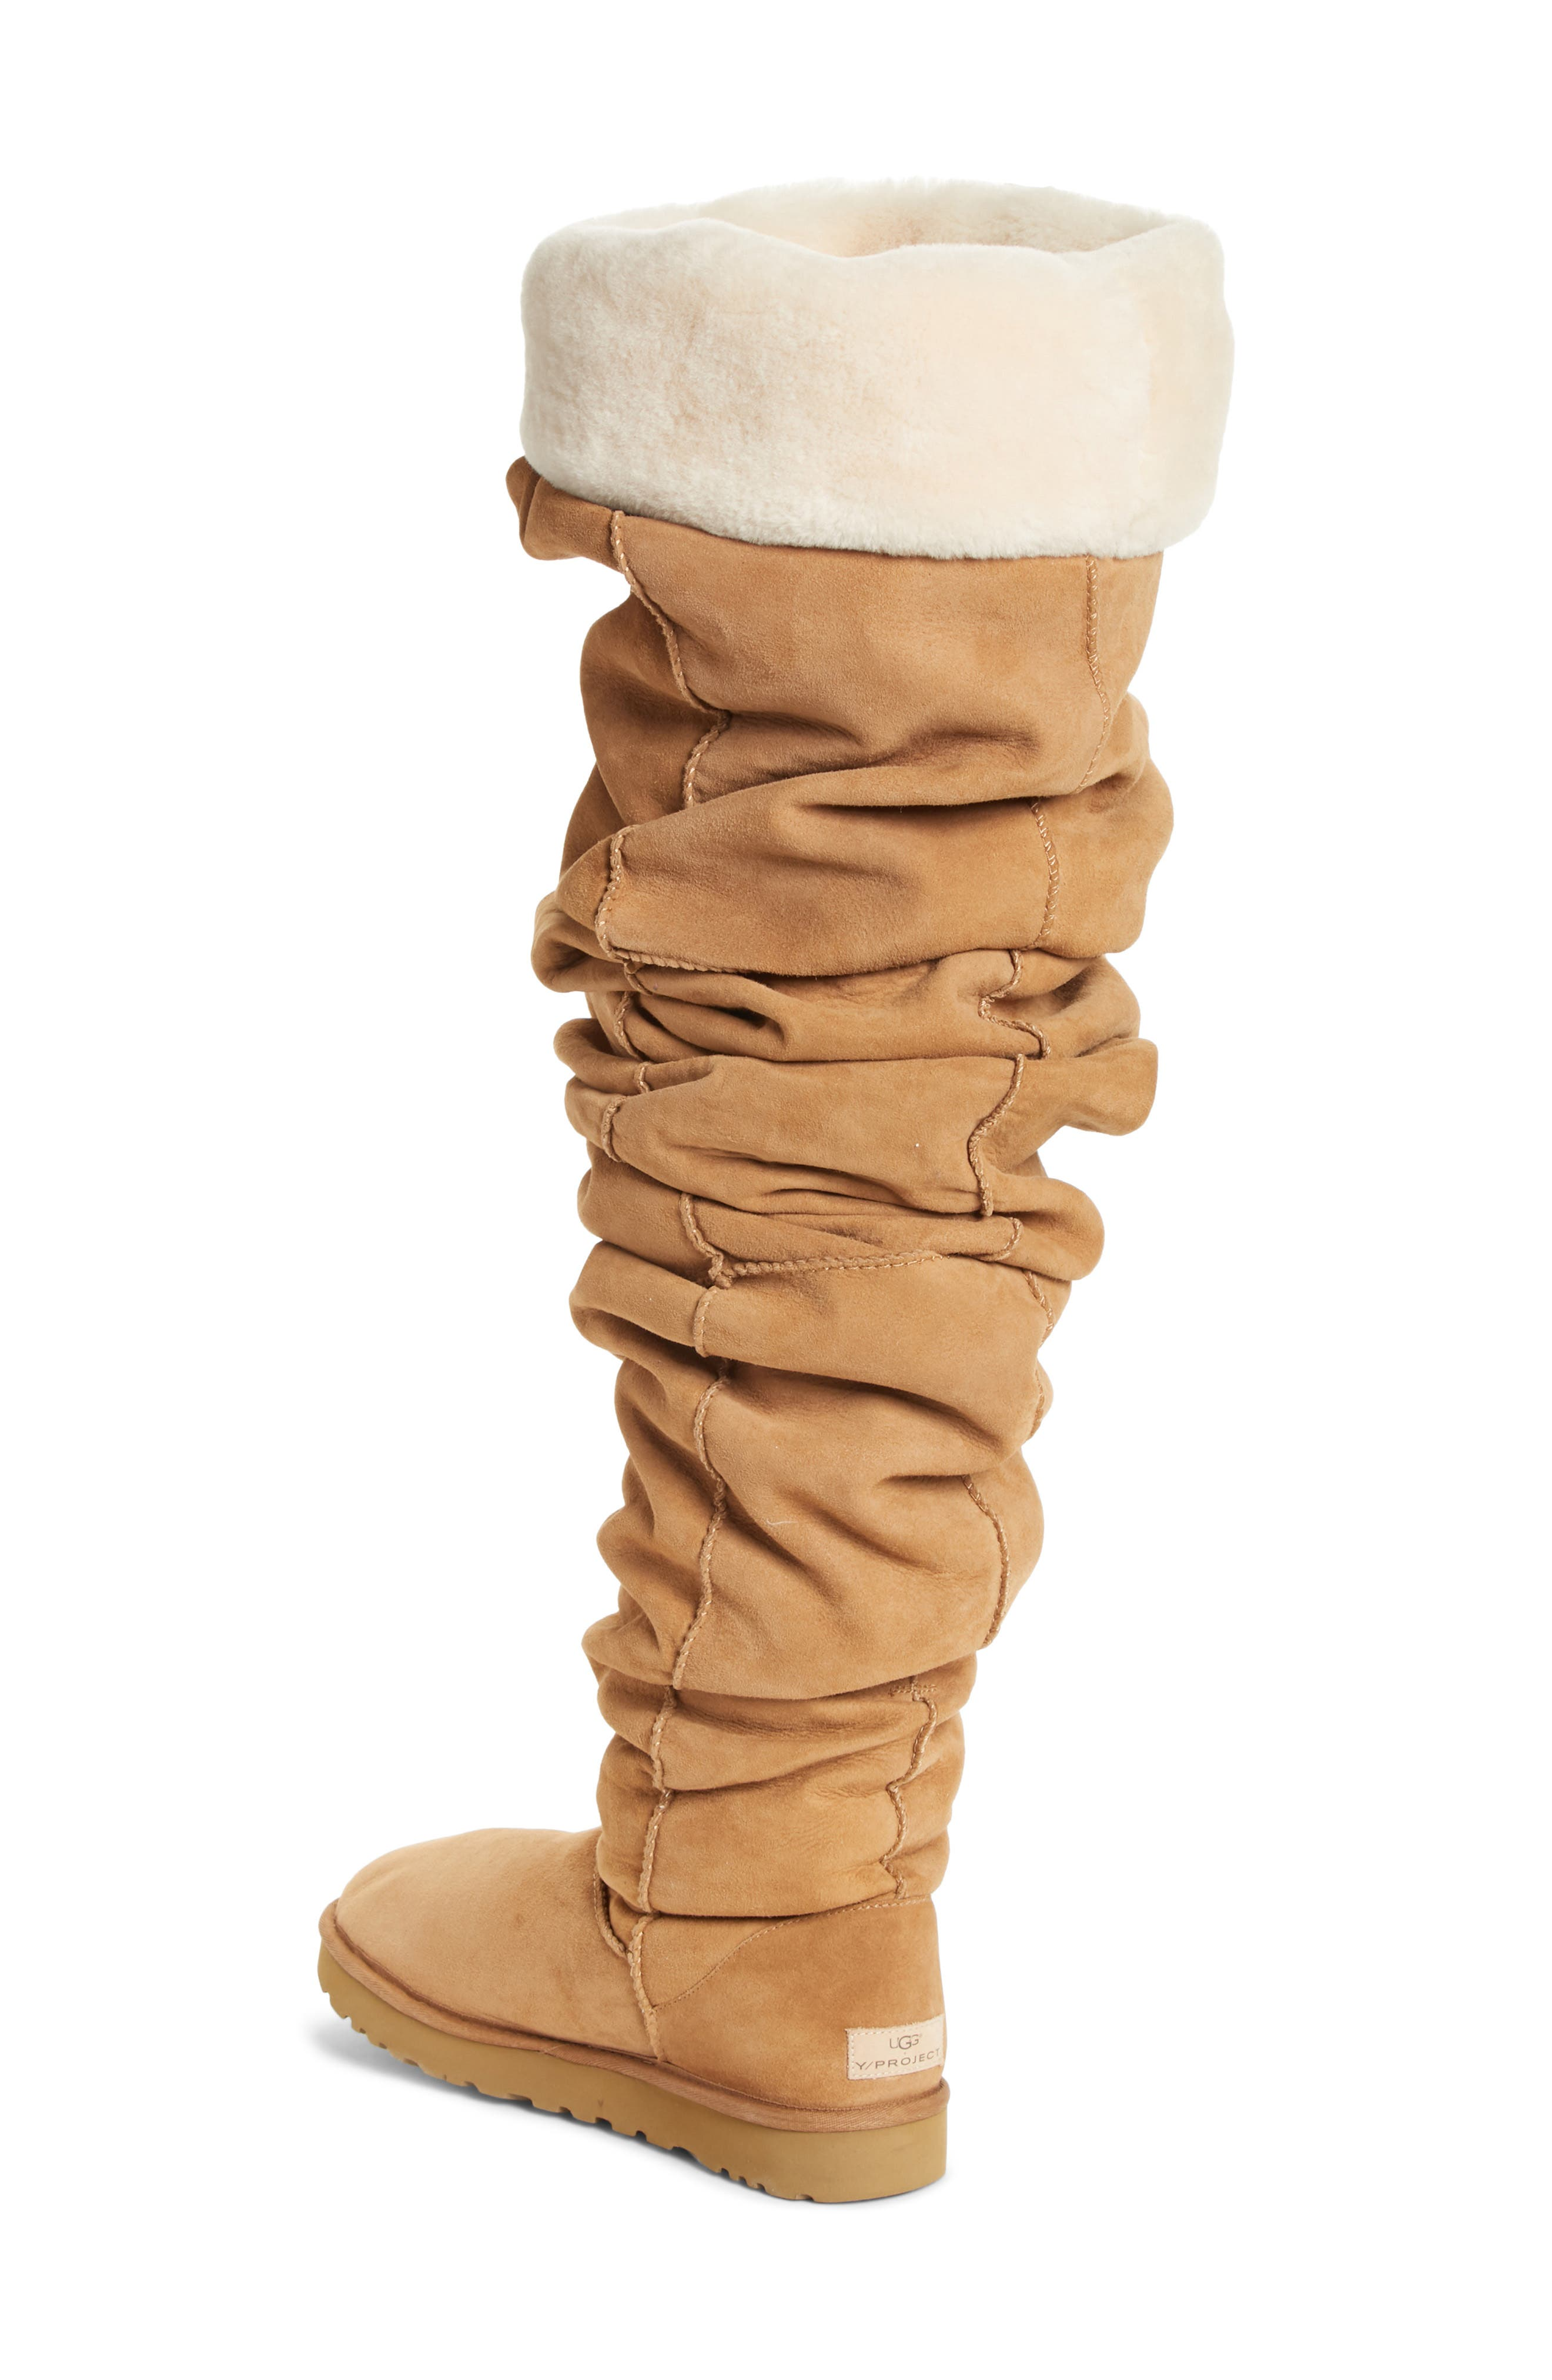 x UGG<sup>®</sup> Thigh High Boot,                             Alternate thumbnail 2, color,                             200